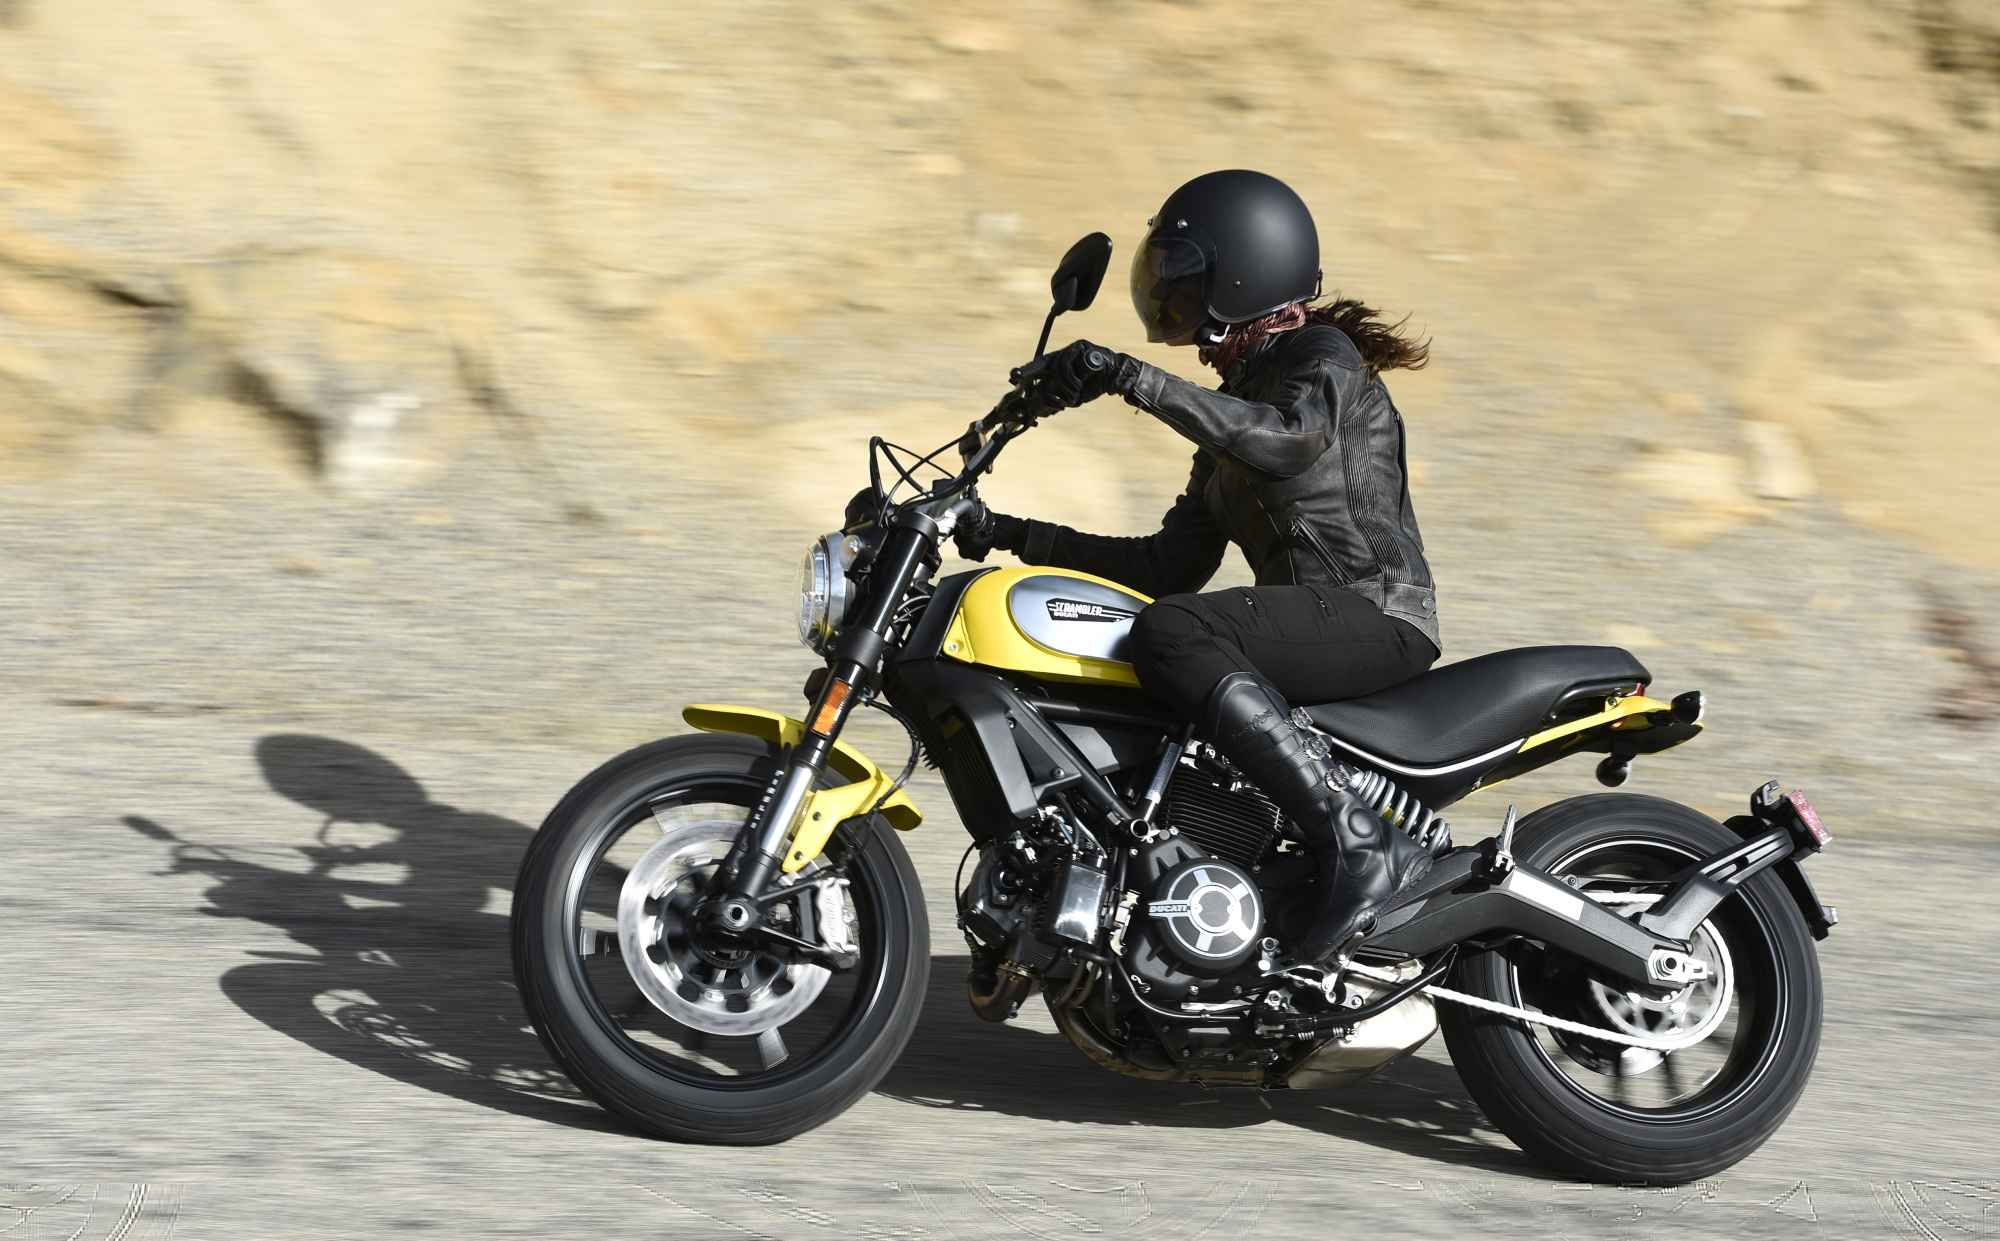 2015 Ducati Scrambler Icon First Ride Motorcycle Review Ducati